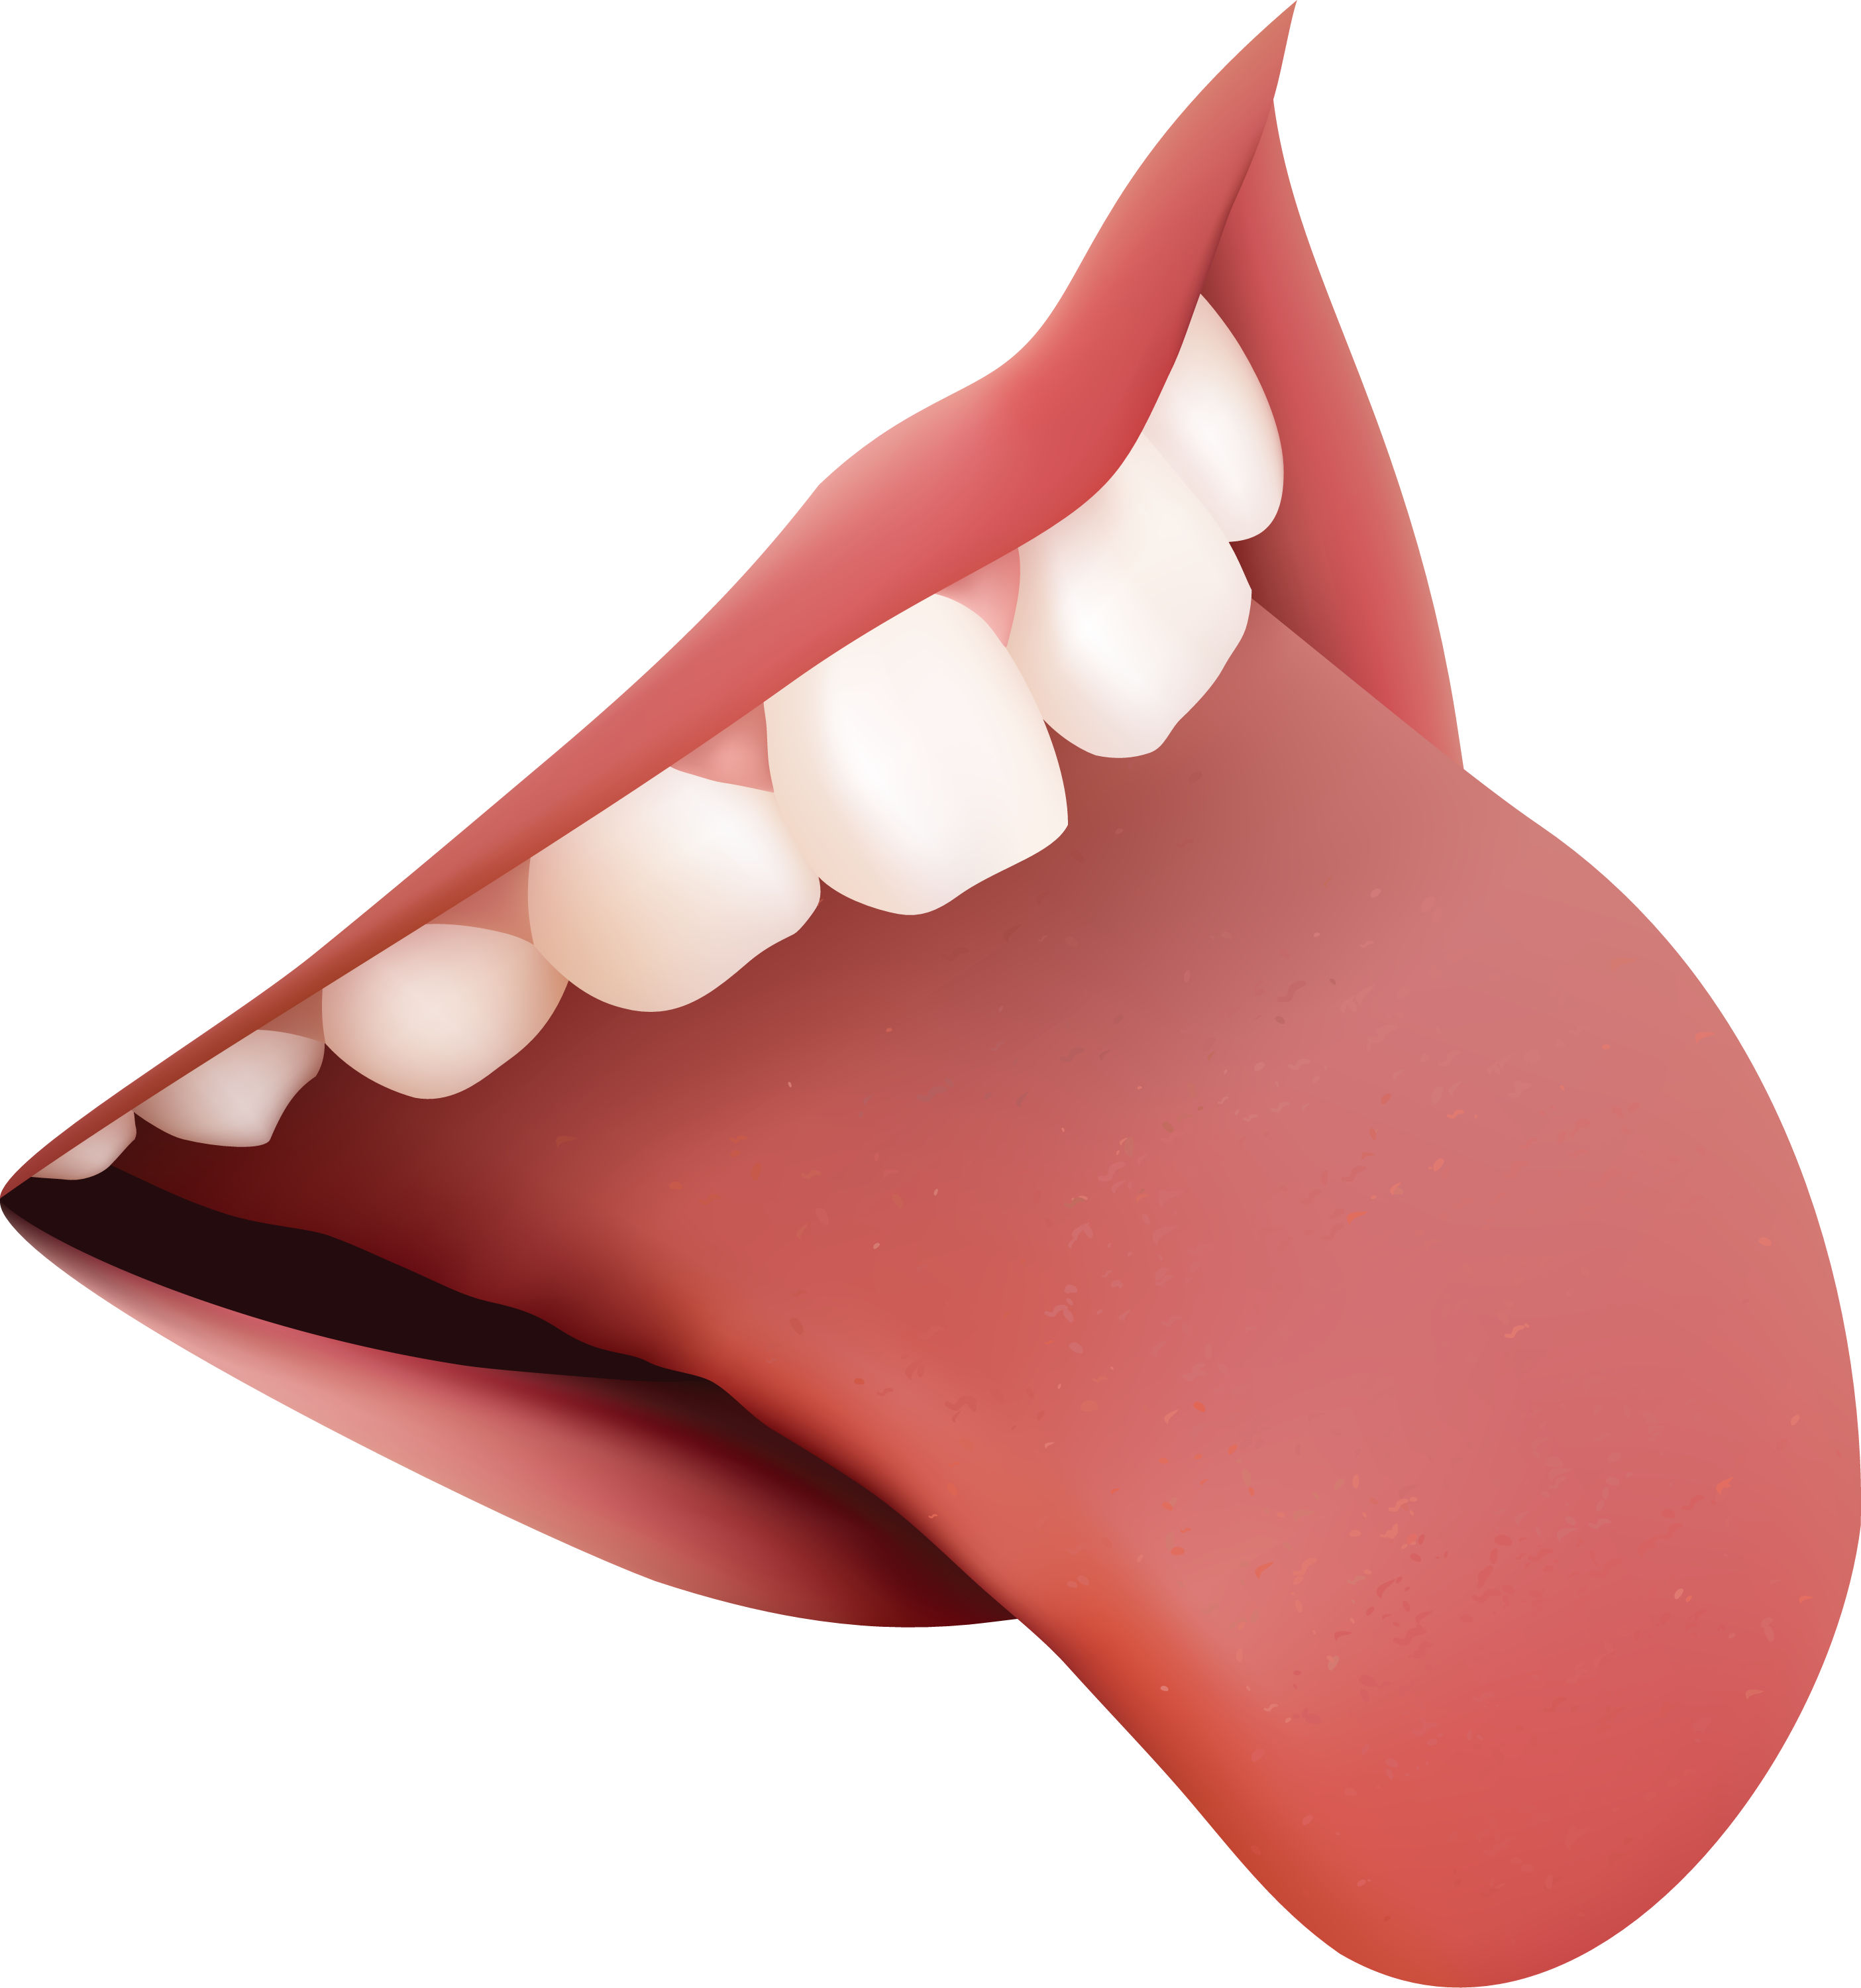 Mouth Talking PNG HD - 125520